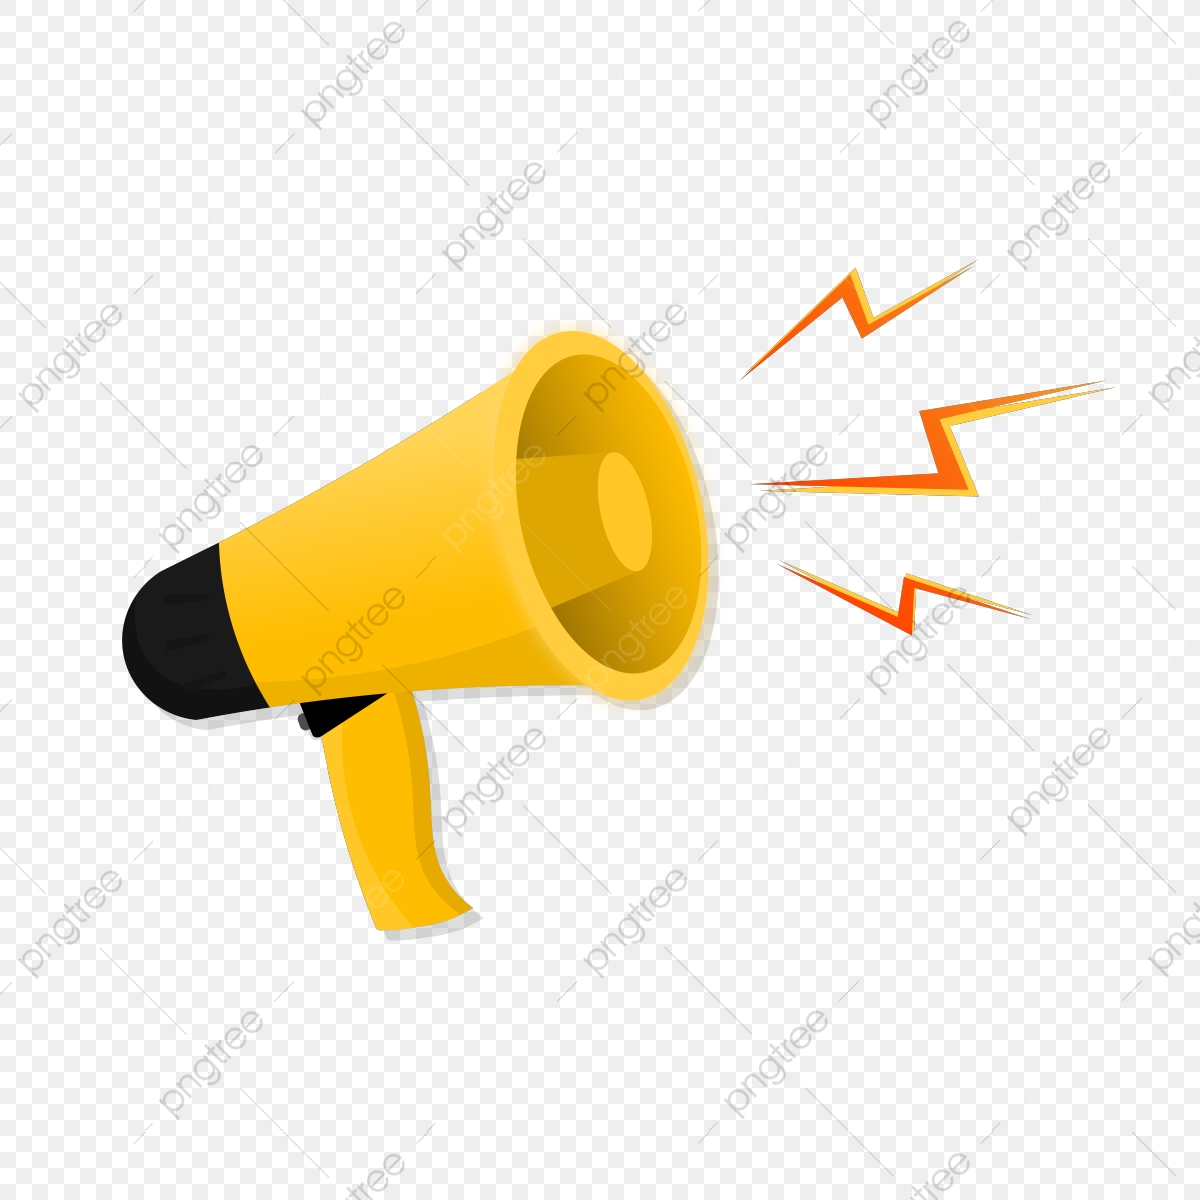 yellow megaphone speaker icon flat communication png and vector with transparent background for free download https pngtree com freepng yellow megaphone speaker 5414912 html